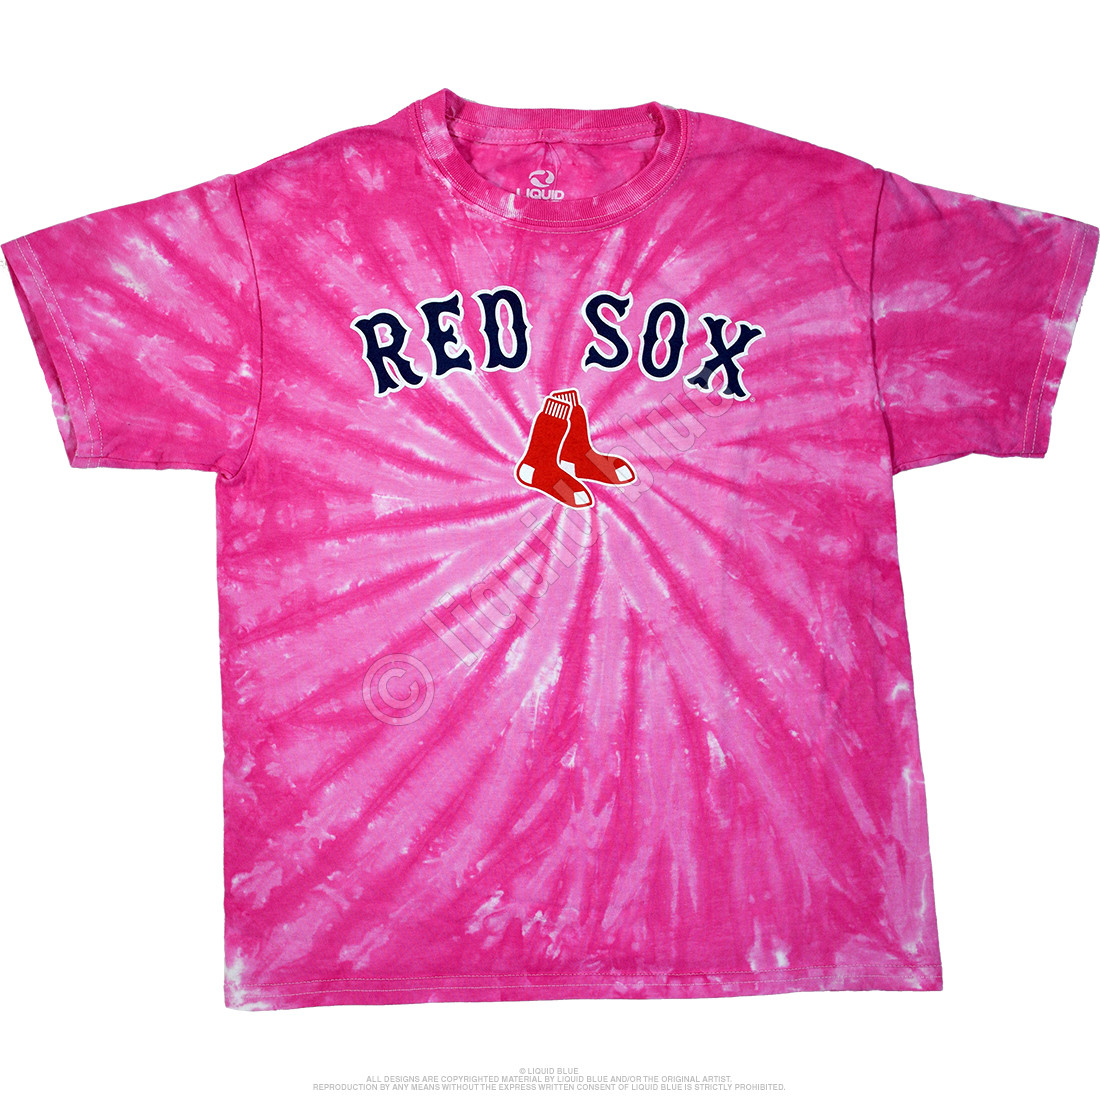 Boston Red Sox Youth Pink Spiral Tie-Dye T-Shirt